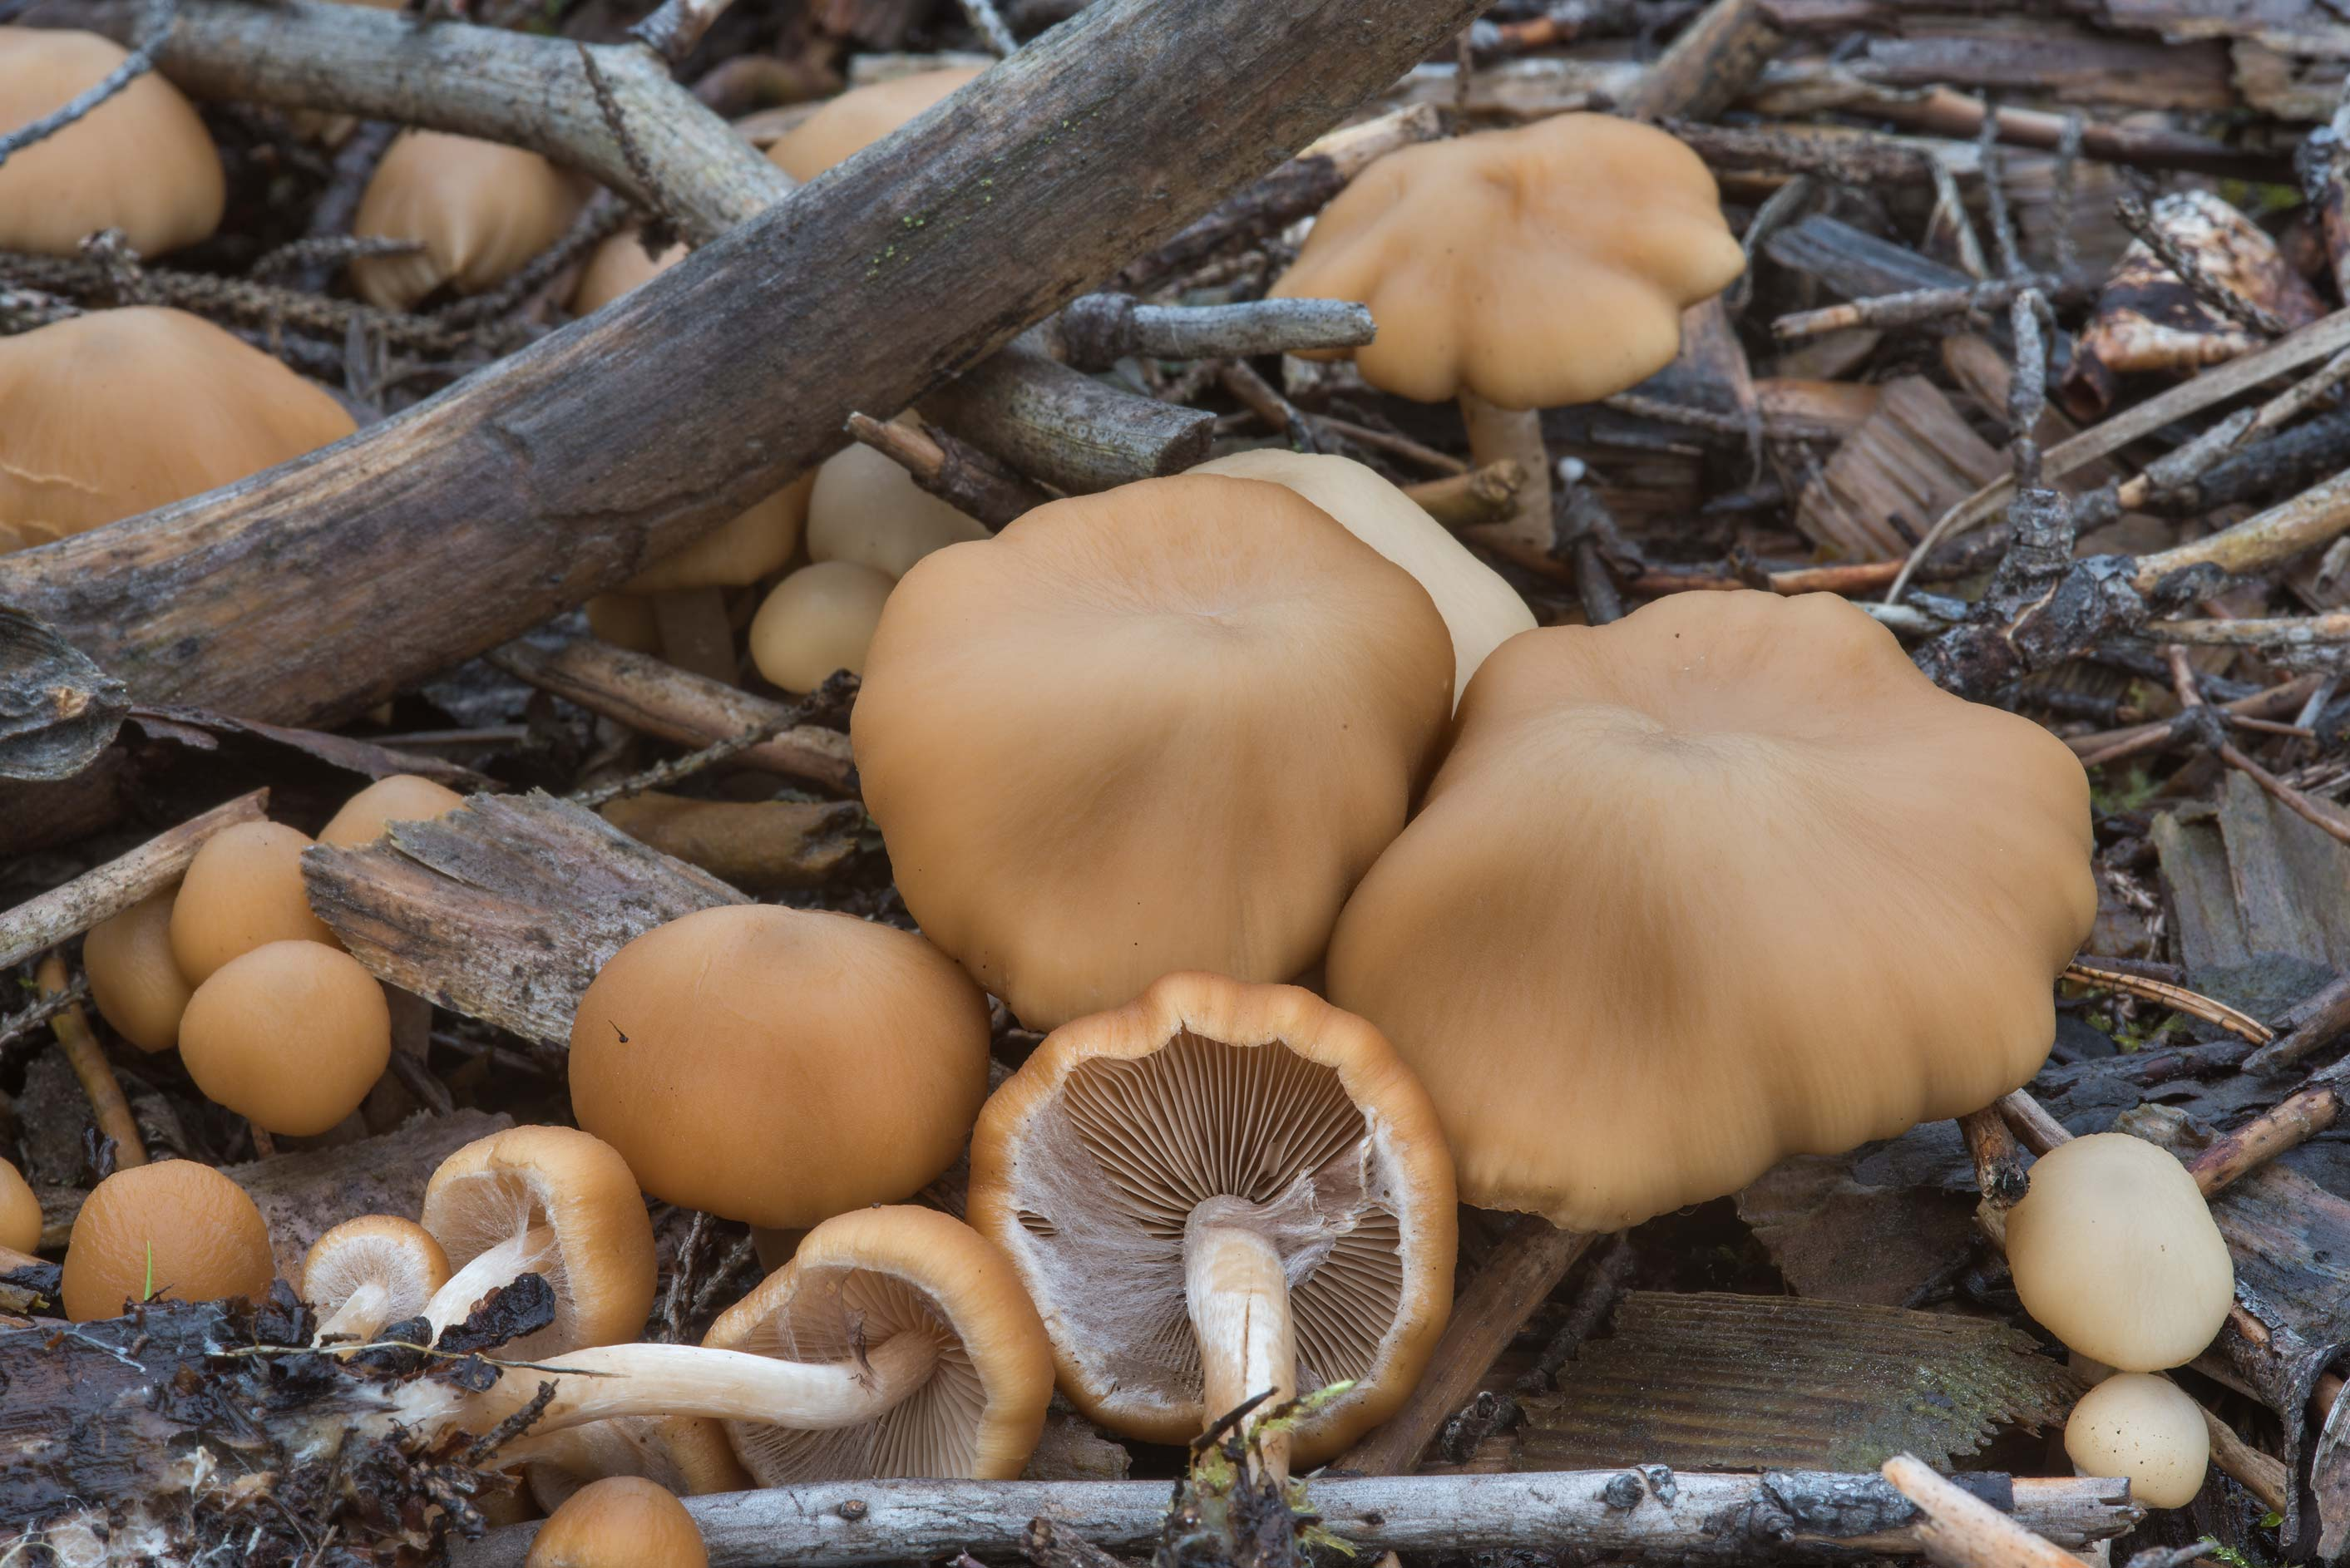 Common stump brittlestem mushrooms (Psathyrella...north-west from St.Petersburg. Russia